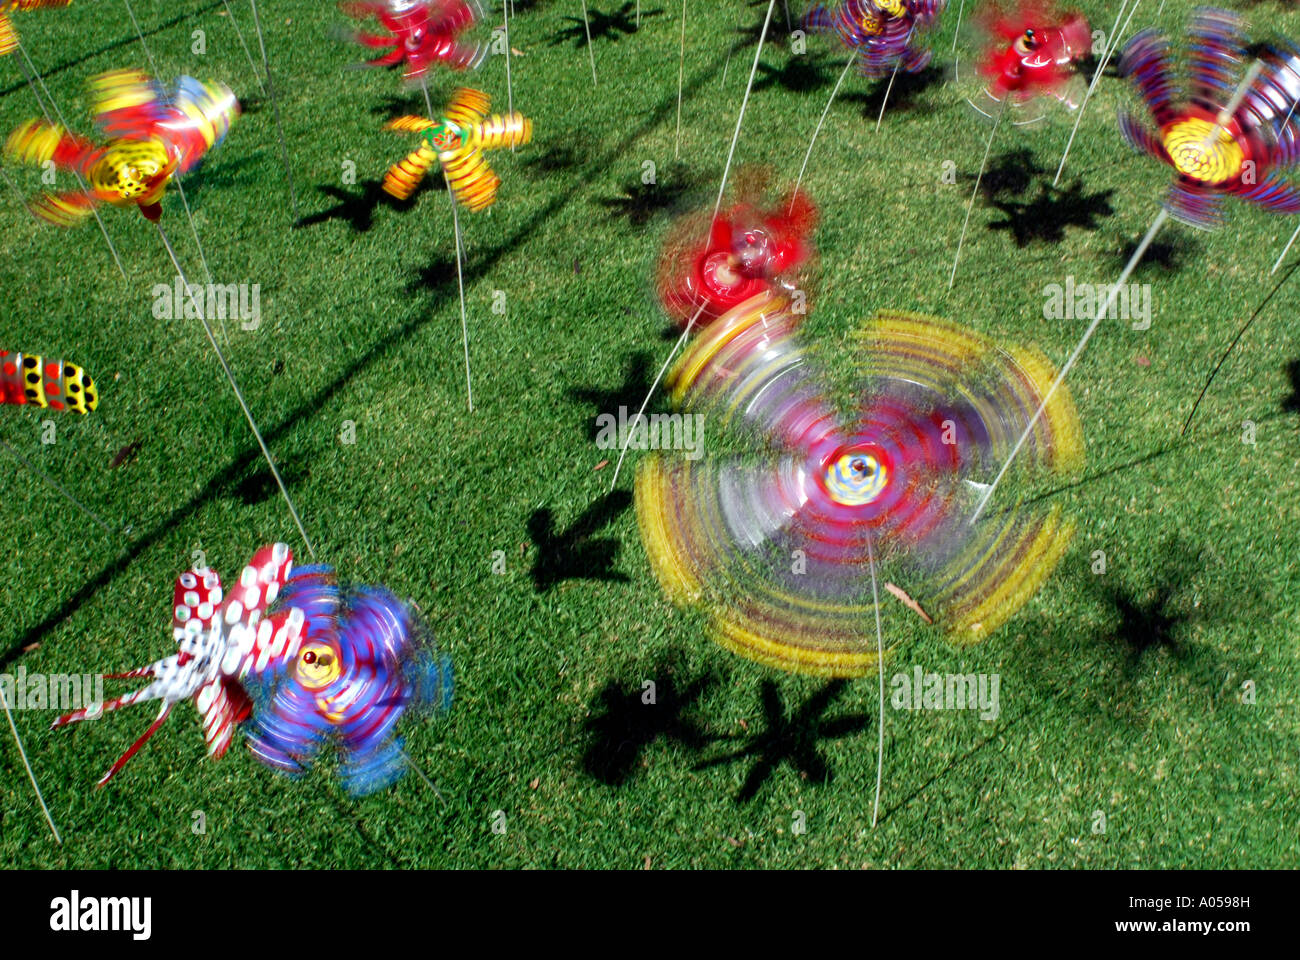 recycled plastic bottles made into spinning toys - Stock Image